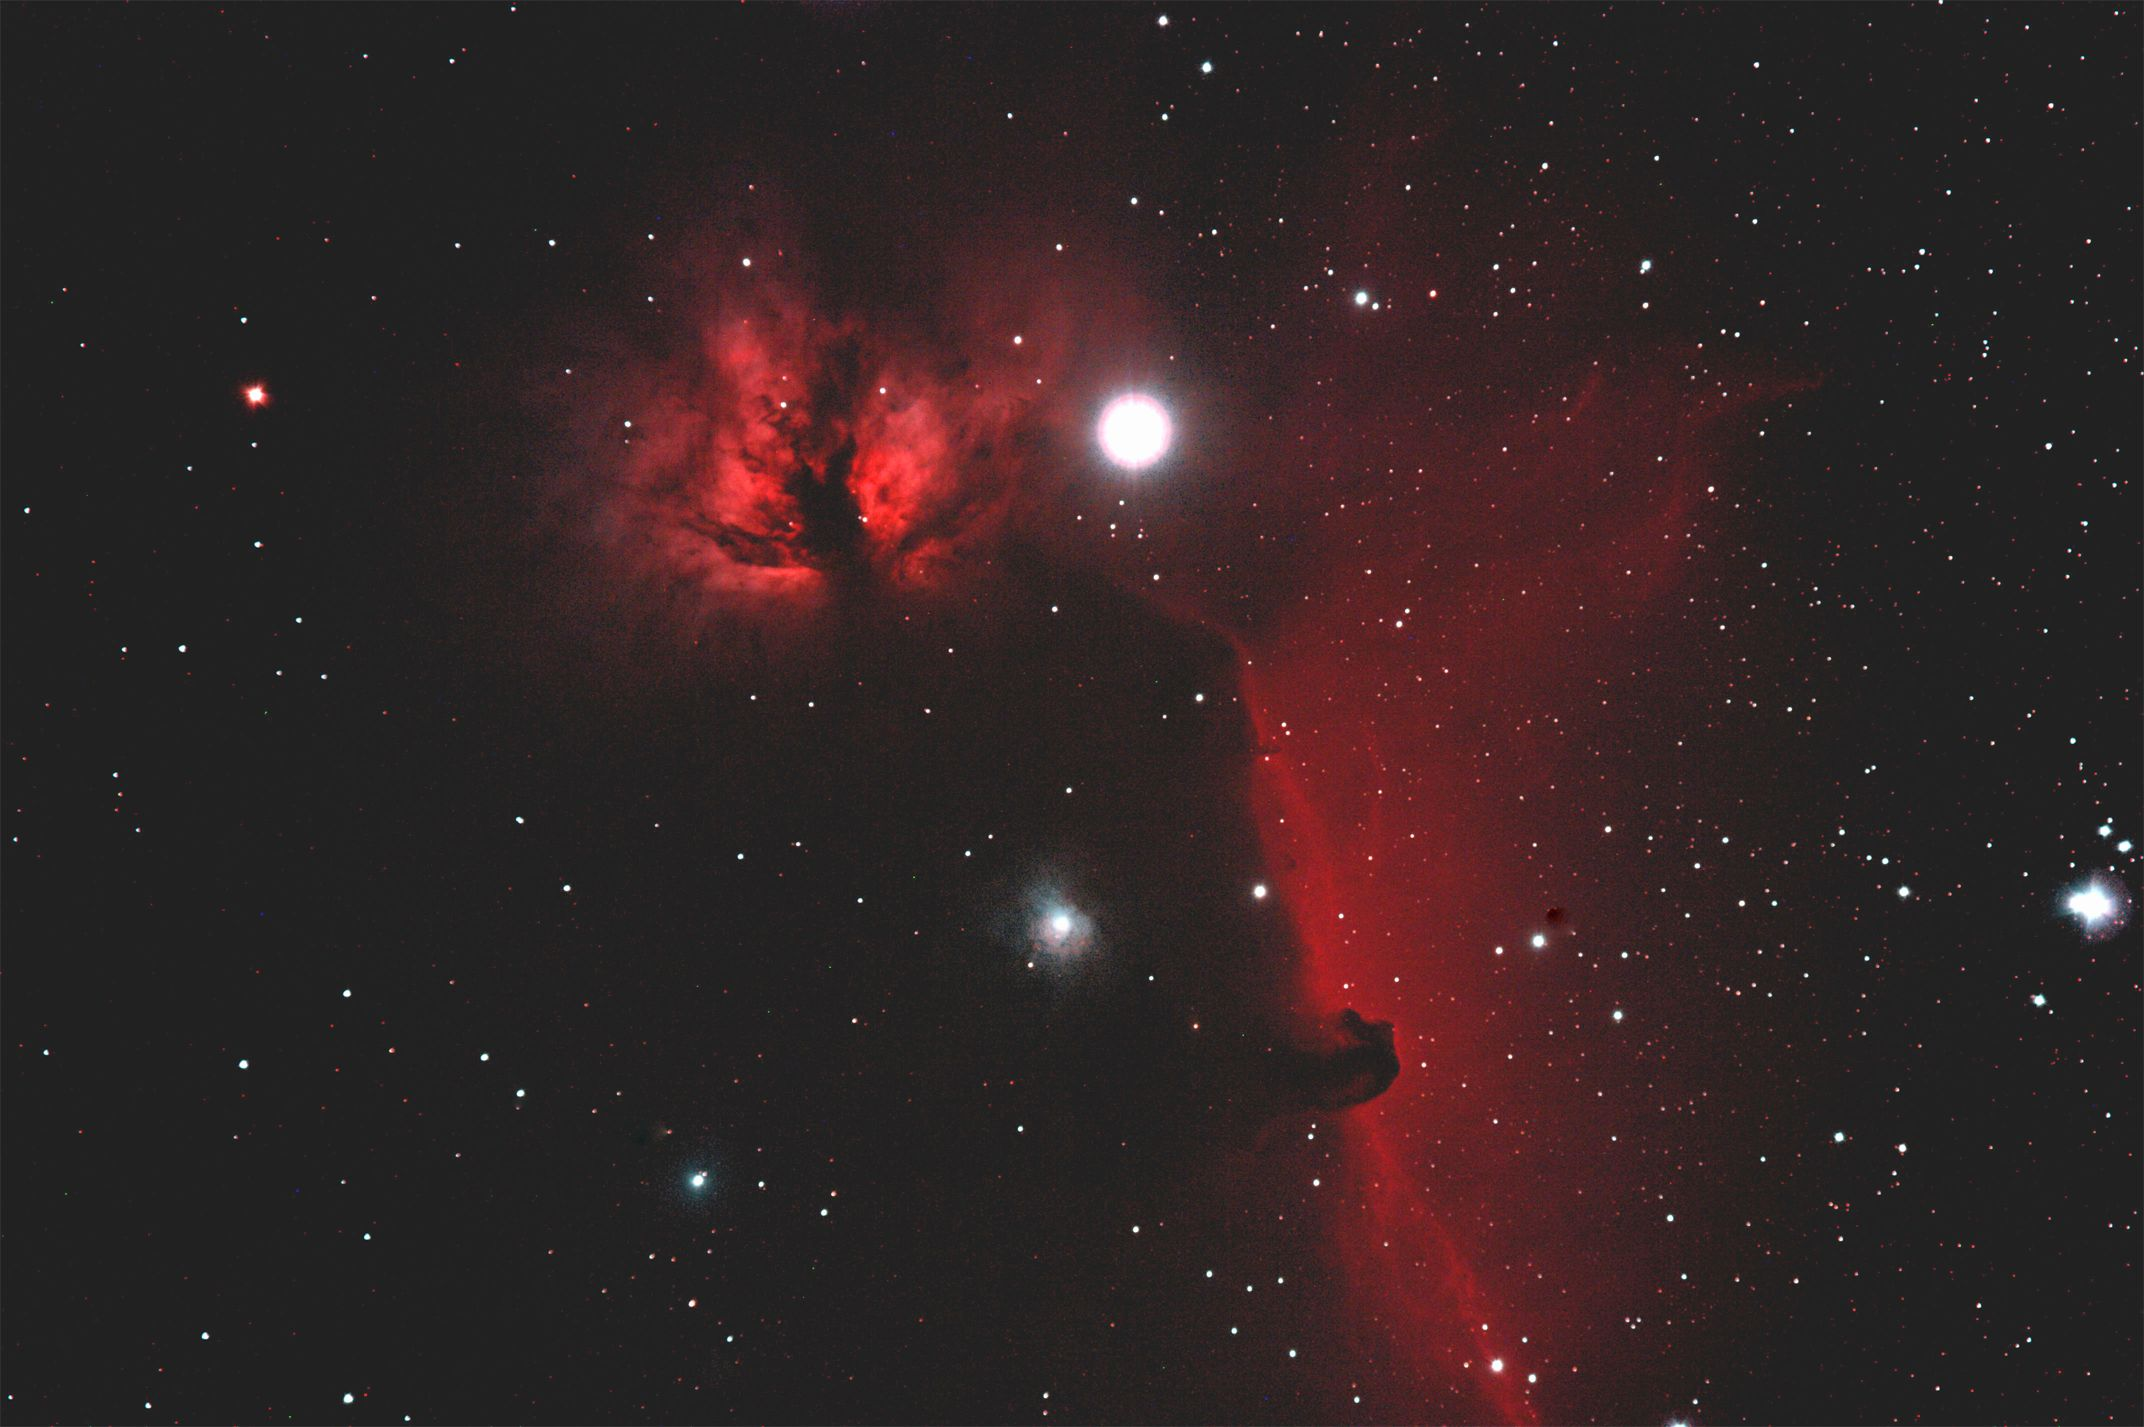 NGC 2024 and IC 434 - Flame and Horsehead Nebula